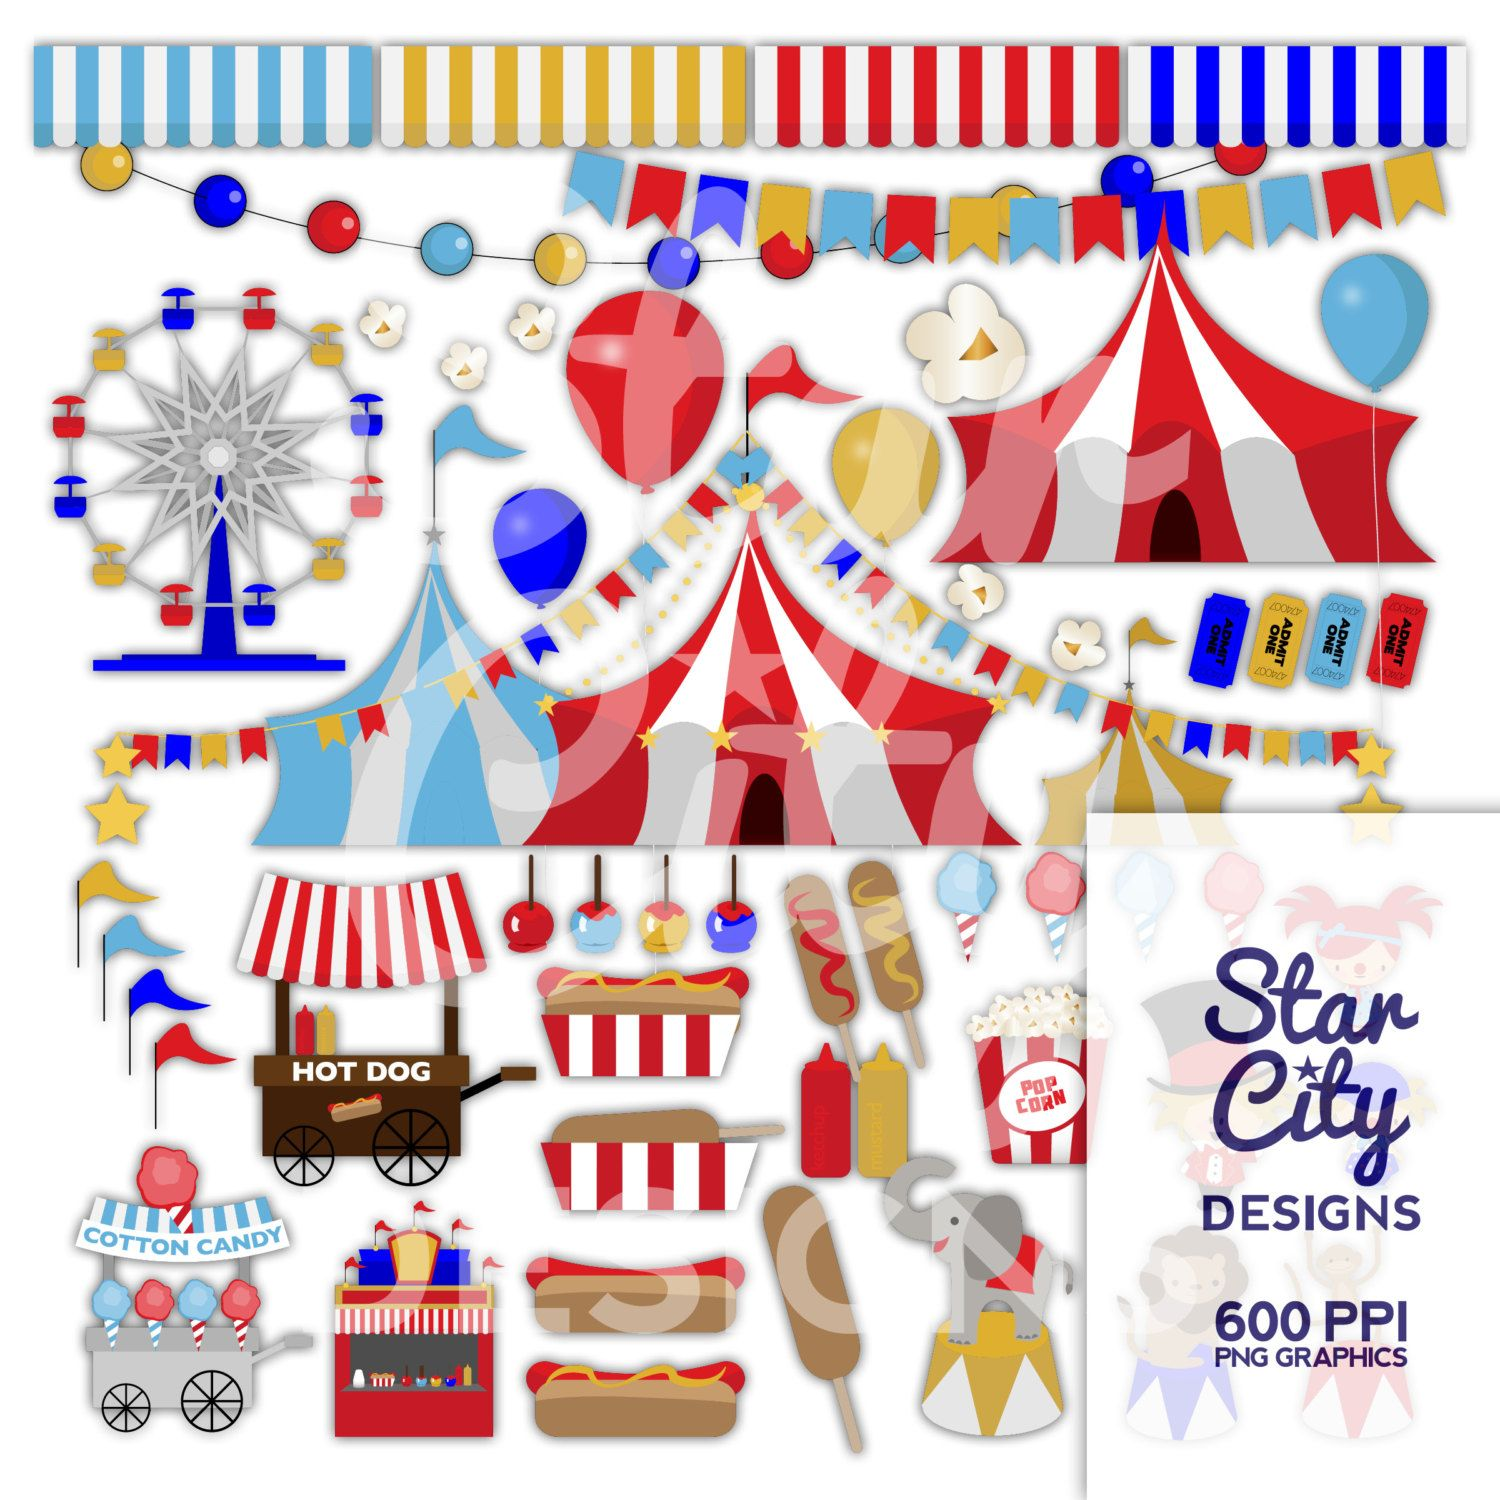 small resolution of circus clipart carnival clipart big top clipart cotton candy clipart clipart clip art vector art vector graphics instant download pinned by